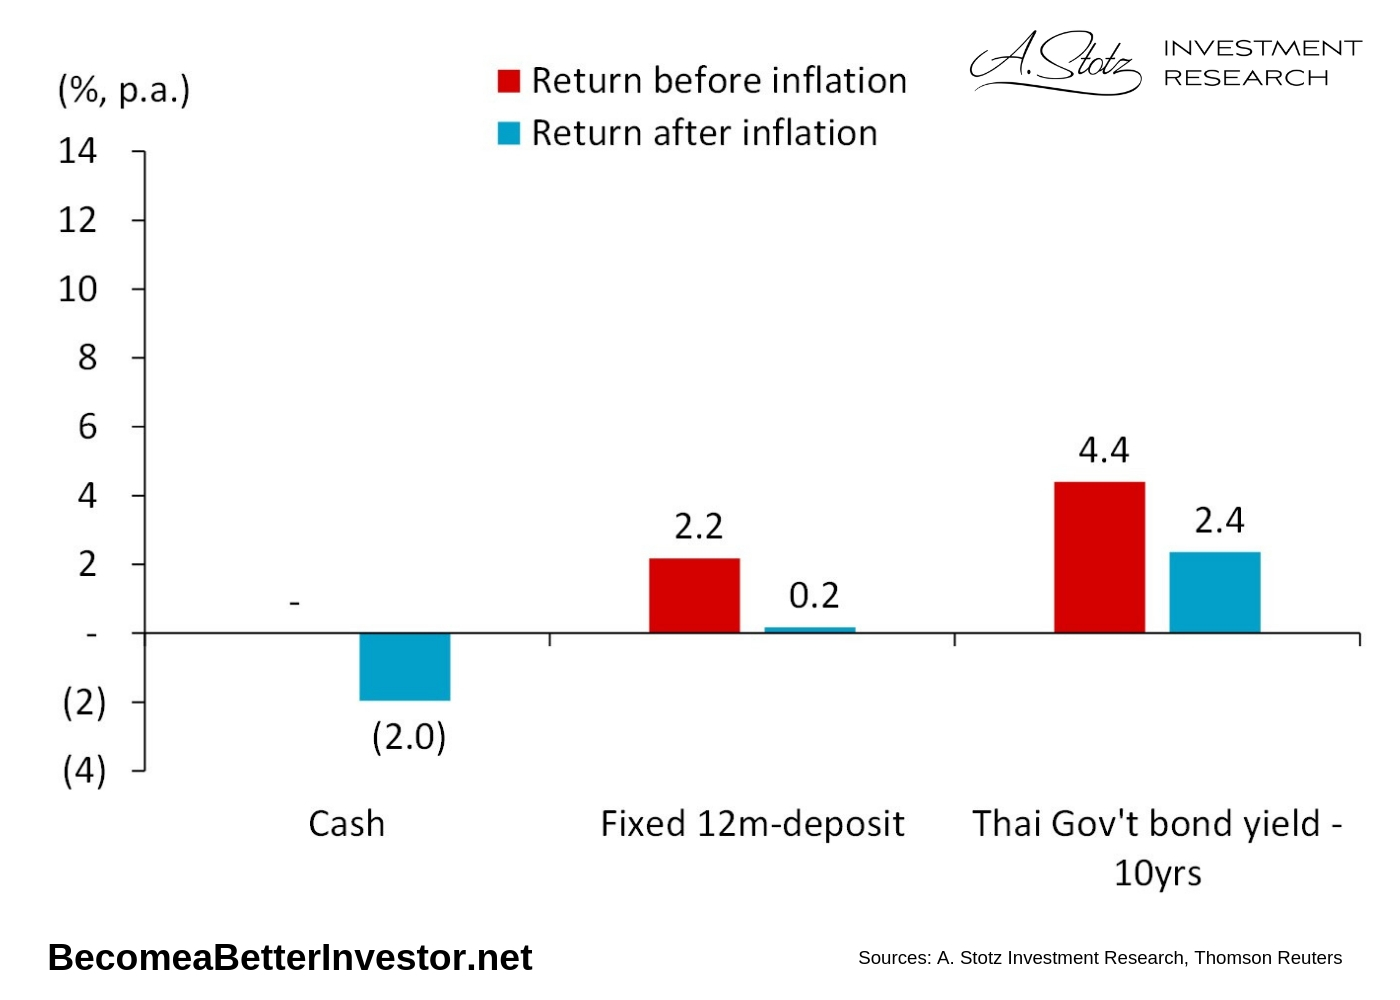 Since 1999, inflation has on average reduced the value of your money by 2% per year in Thailand.